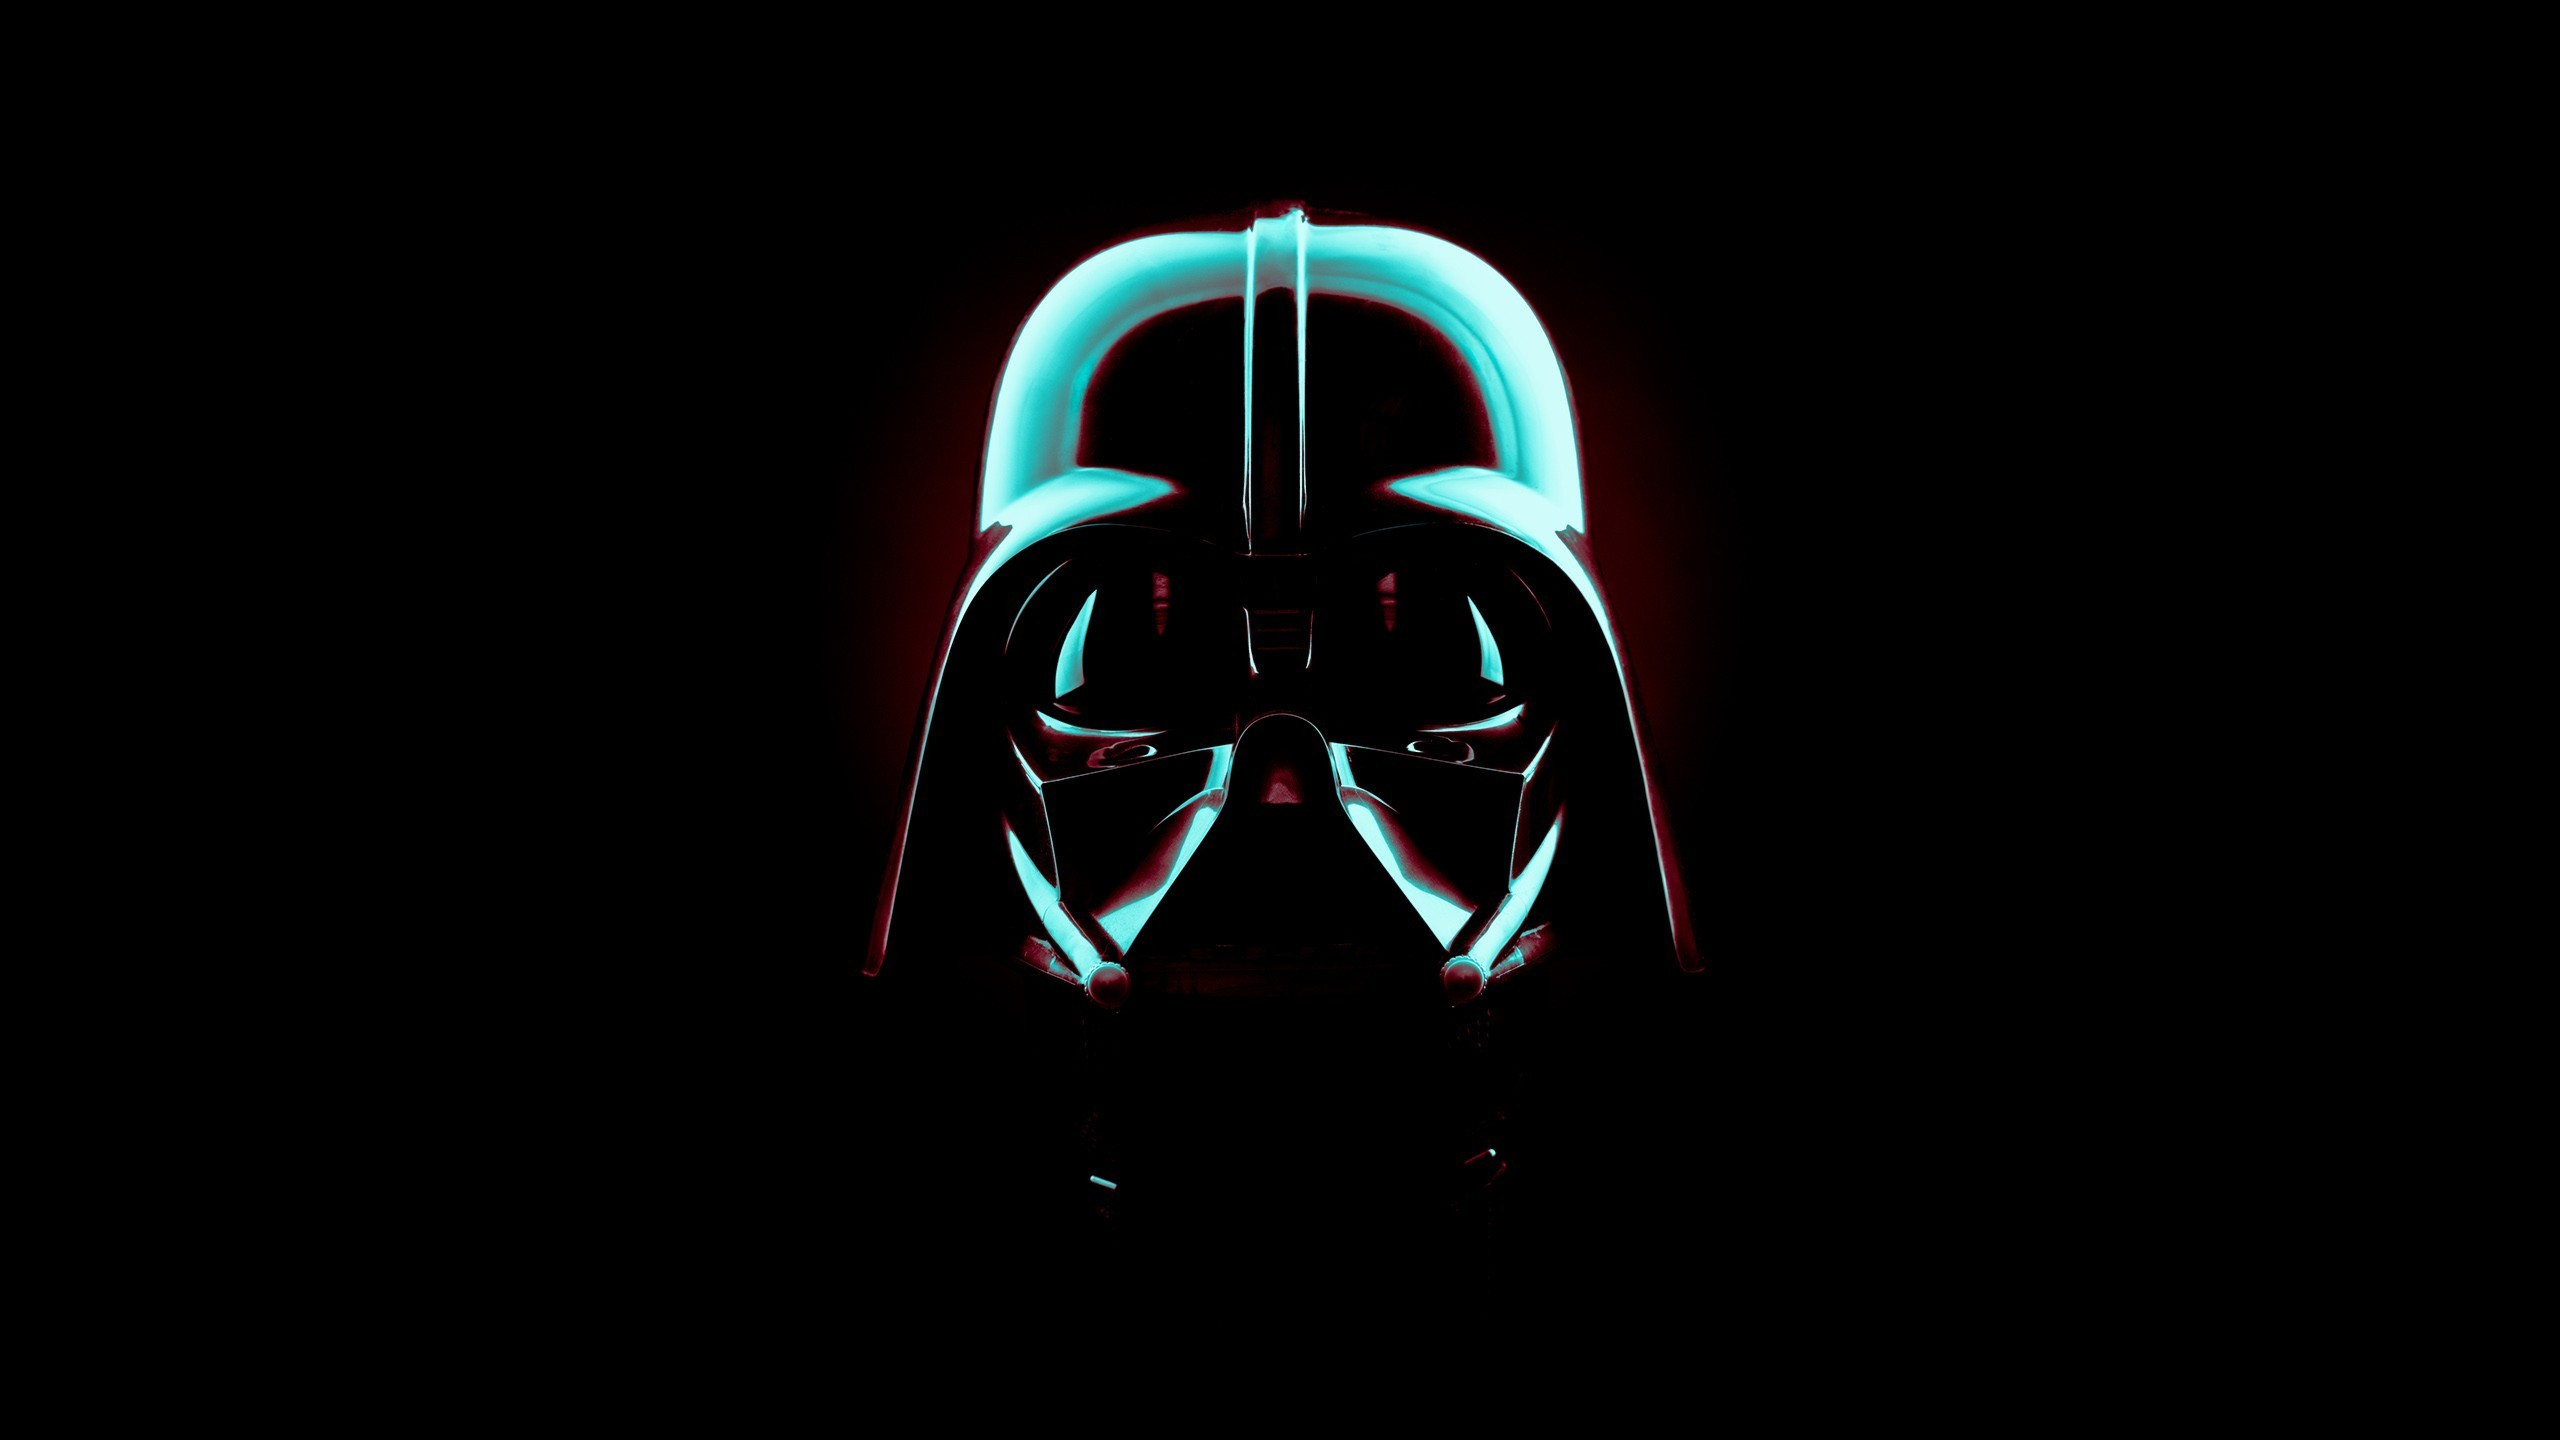 Star Wars Hd Wallpaper 79 Pictures